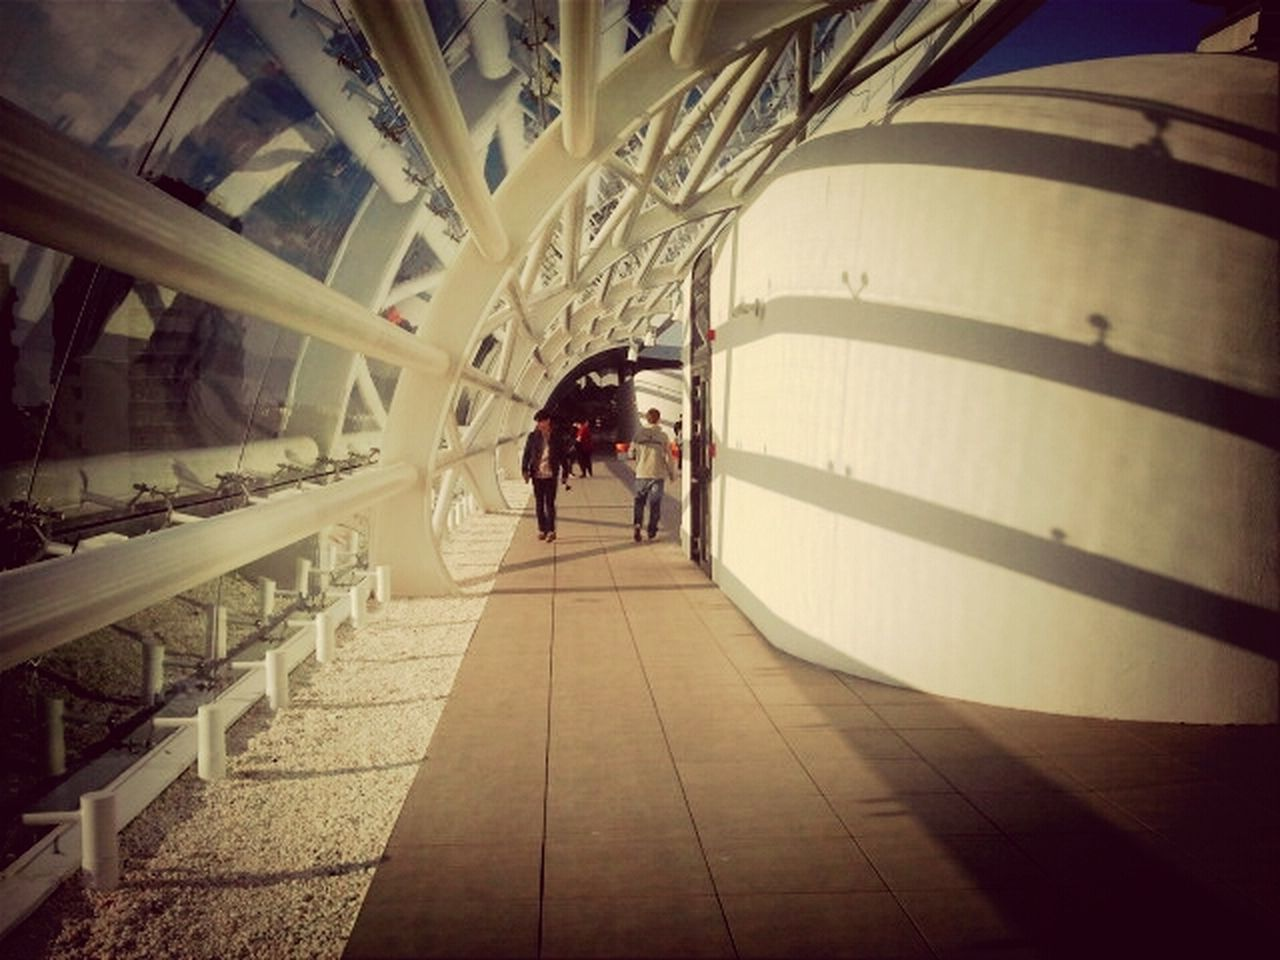 indoors, architecture, built structure, walking, real people, men, full length, lifestyles, women, large group of people, day, people, adult, adults only